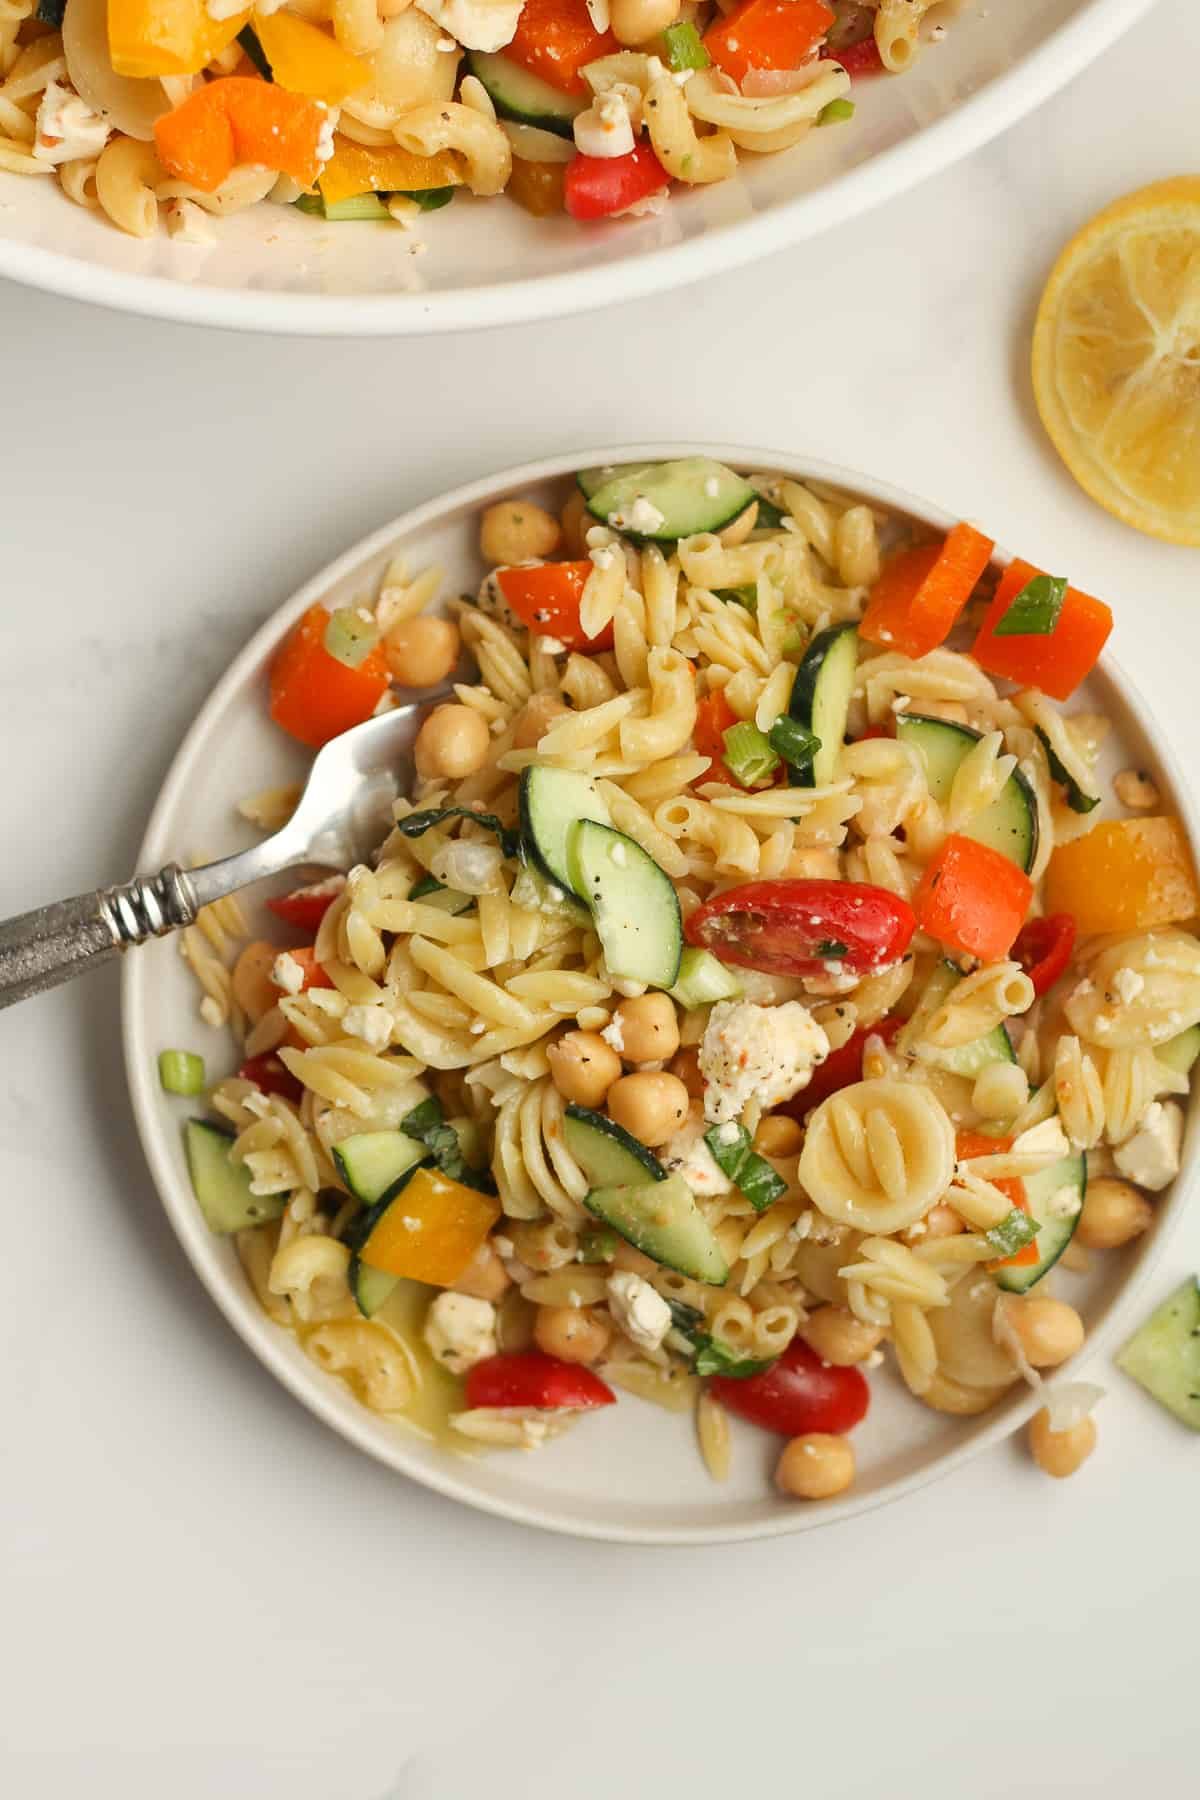 Overhead view of pasta salad with a fork.